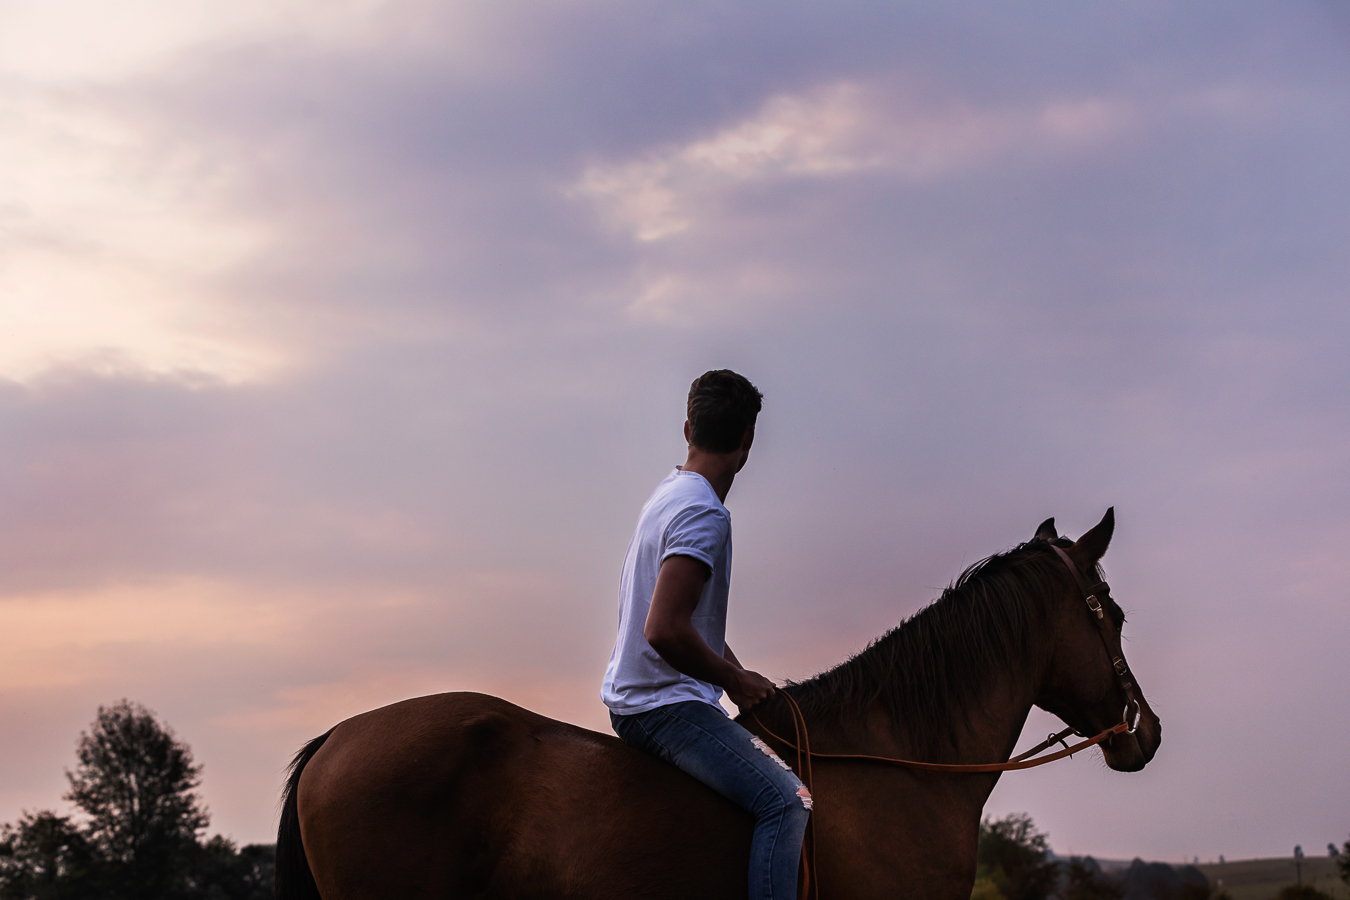 Igor Emmerich, portrait, portrait photographer, lifestyle photographer, horse, horse riding, friends, young, white man, tender, care, South Africa, riding, twilight, sunset